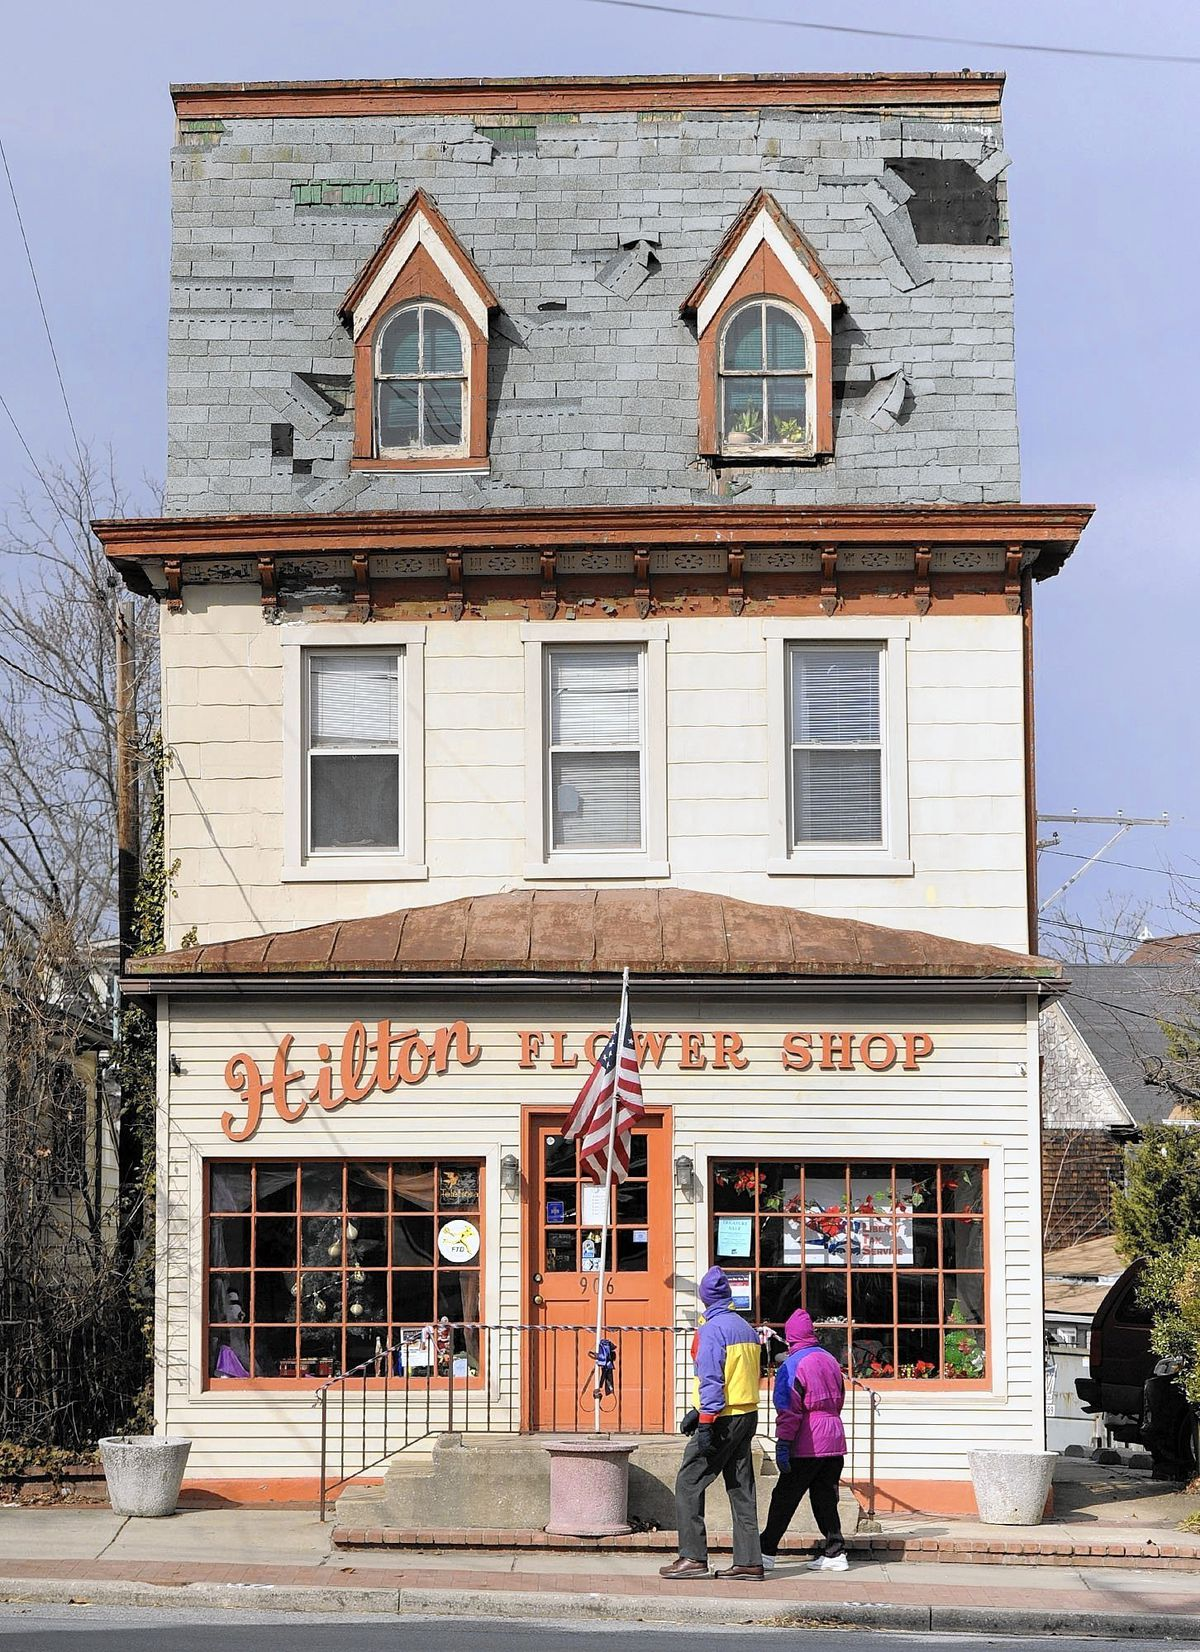 Catonsville flower shop to be demolished - Baltimore Sun